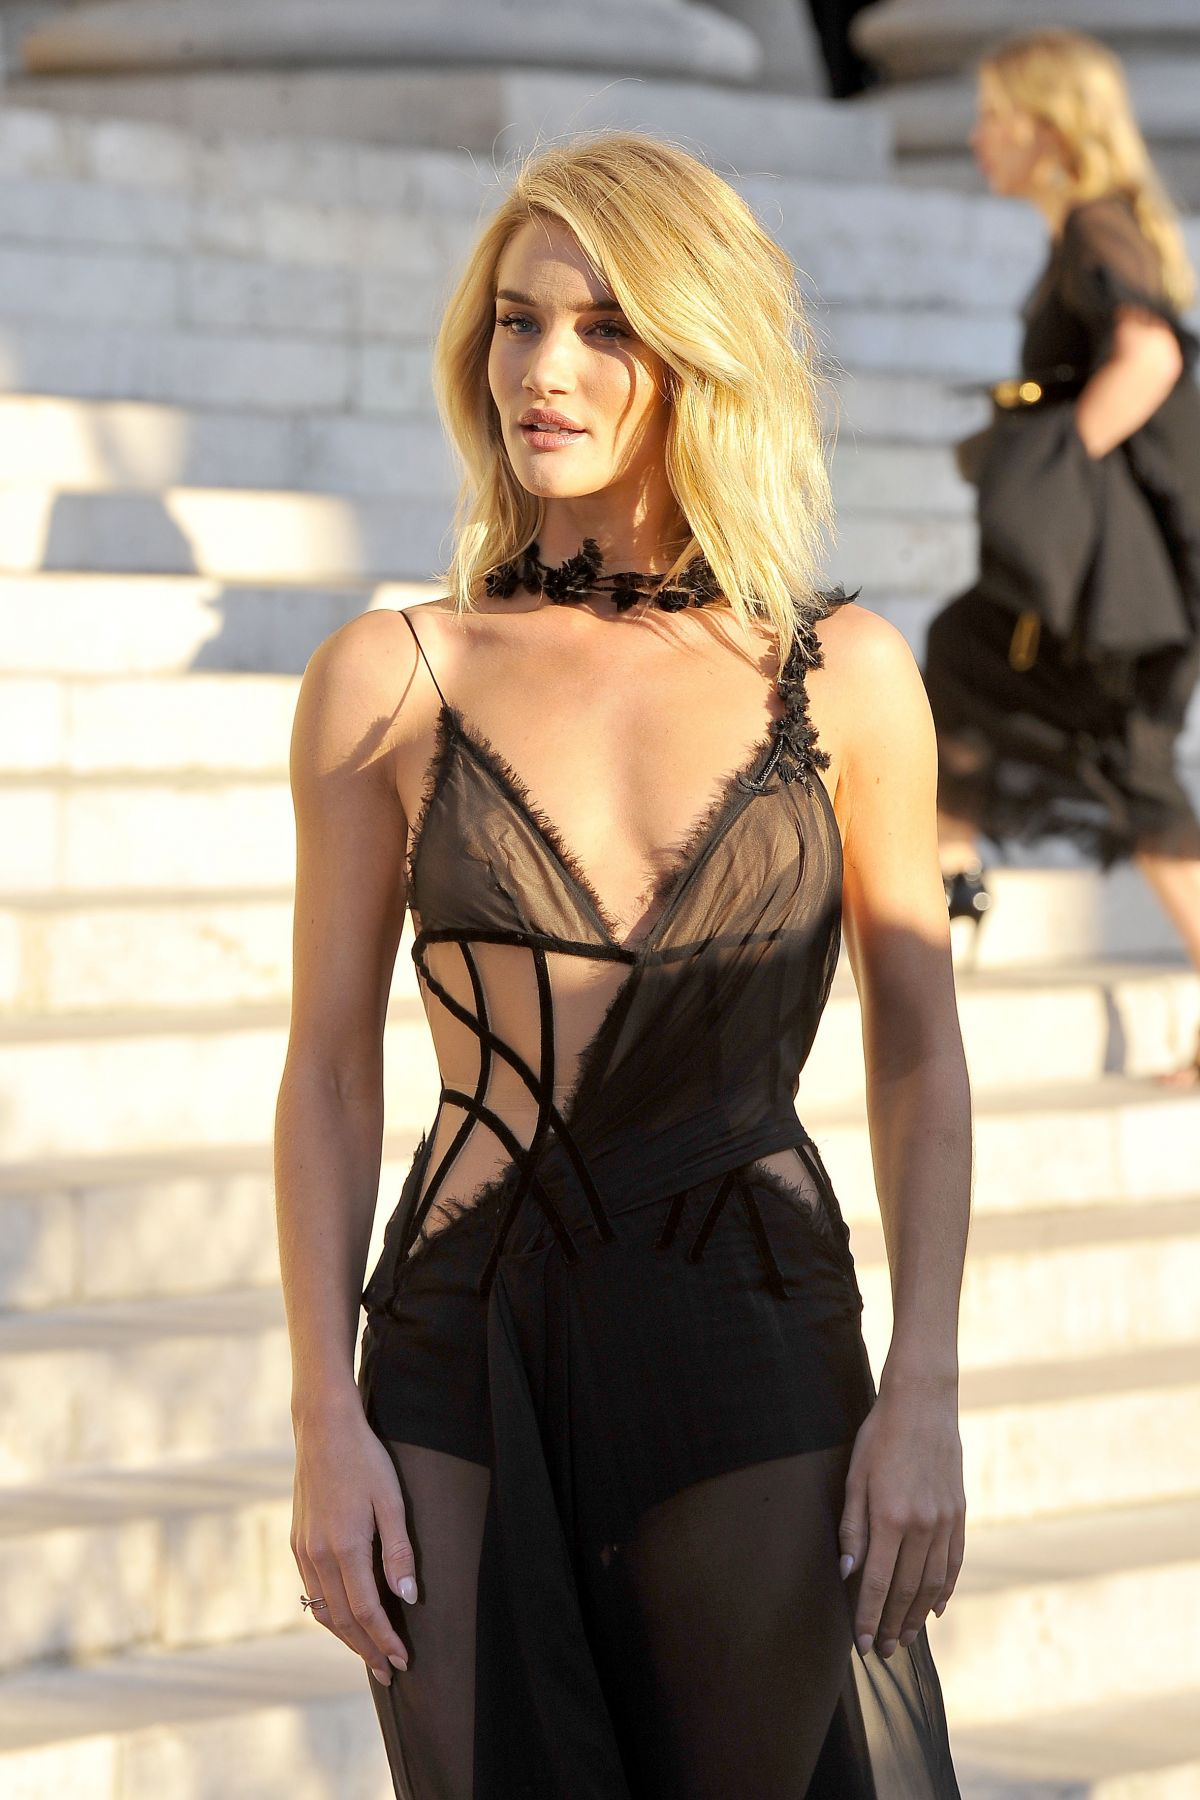 Rosie Huntington-Whiteley At Atelier Versace Show - Celebzz - Celebzz